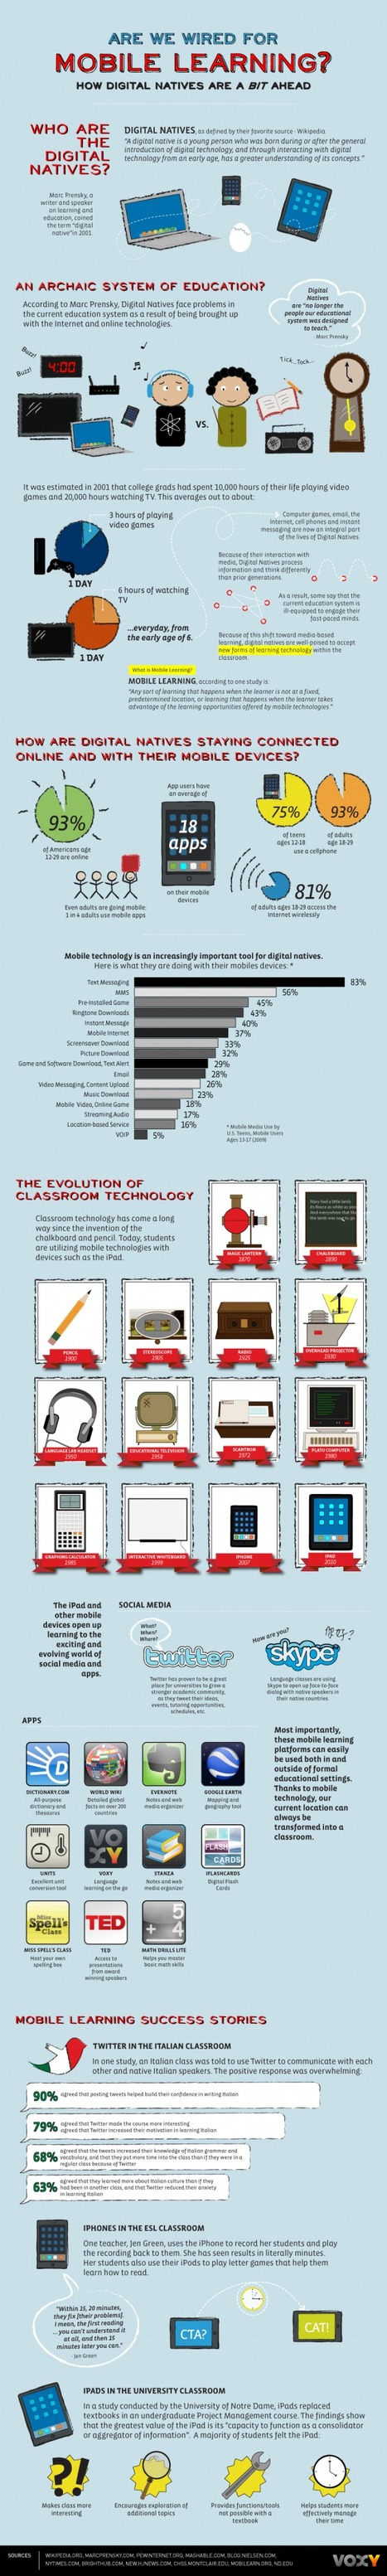 Are We Wired For Mobile Learning? [INFOGRAPHIC] | Voxy Blog | Infographics for Teaching and Learning | Scoop.it